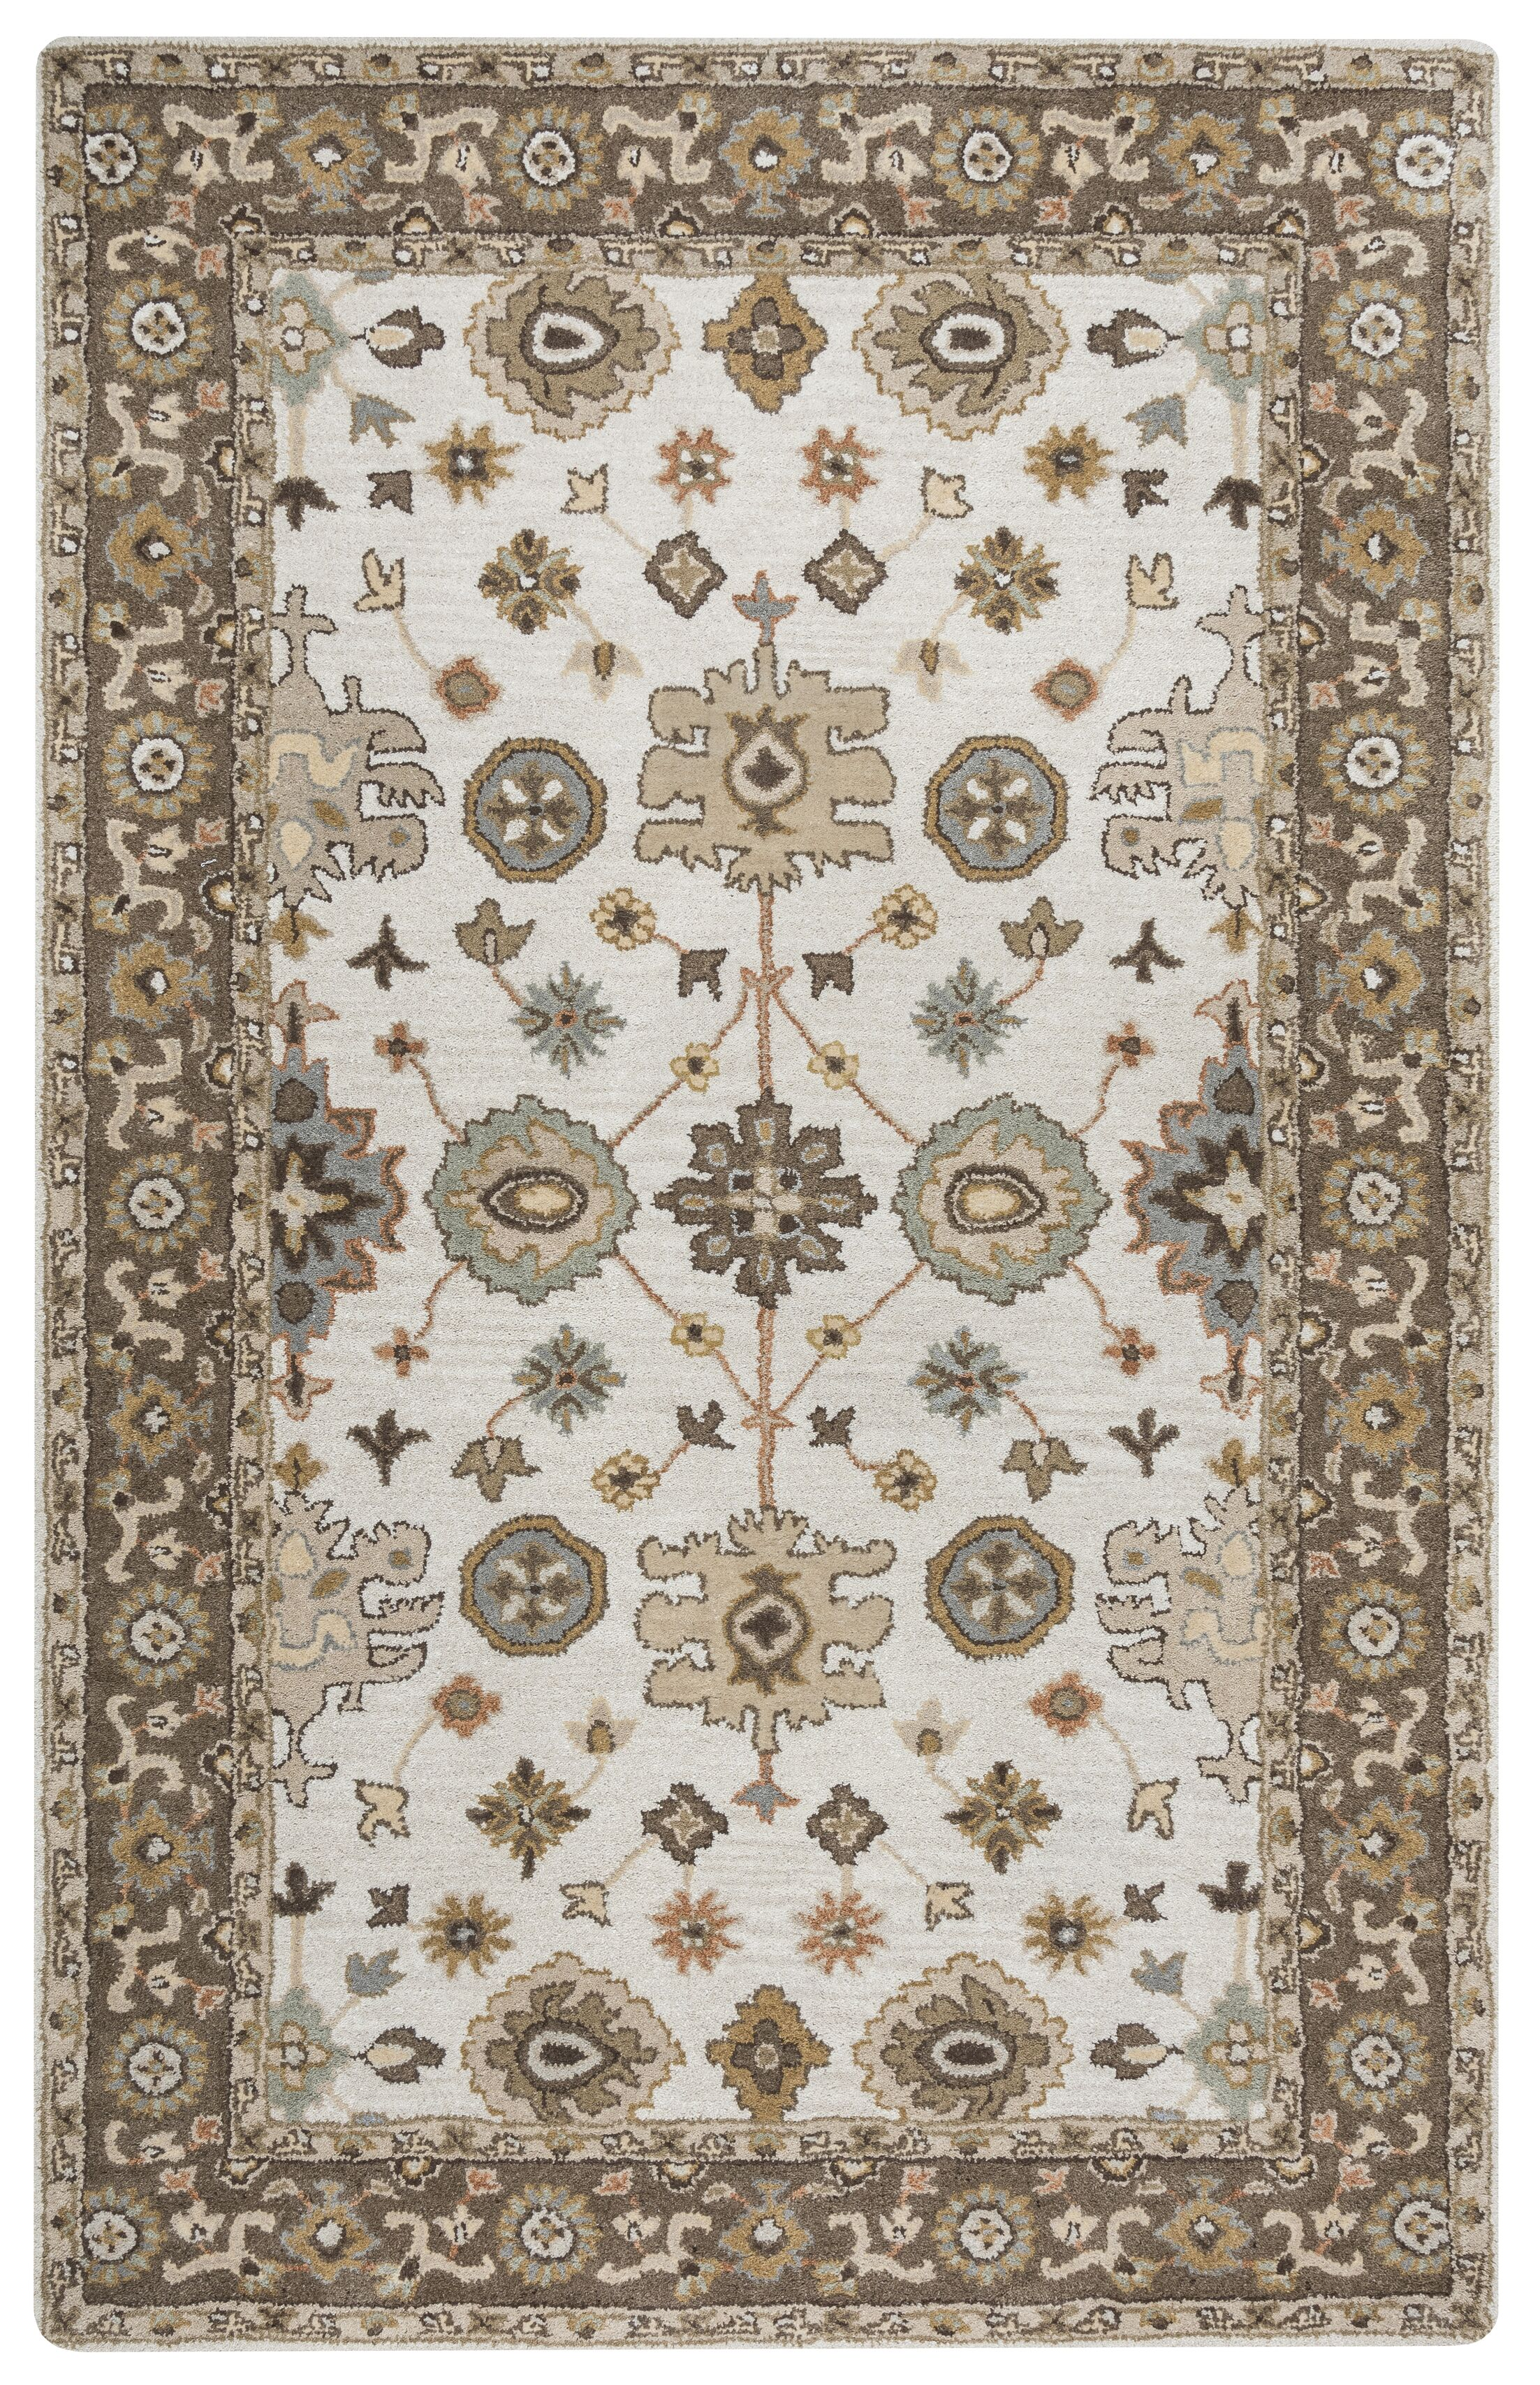 Lamothe Hand-Tufted Wool Brown Area Rug Rug Size: Rectangle 9' x 12'